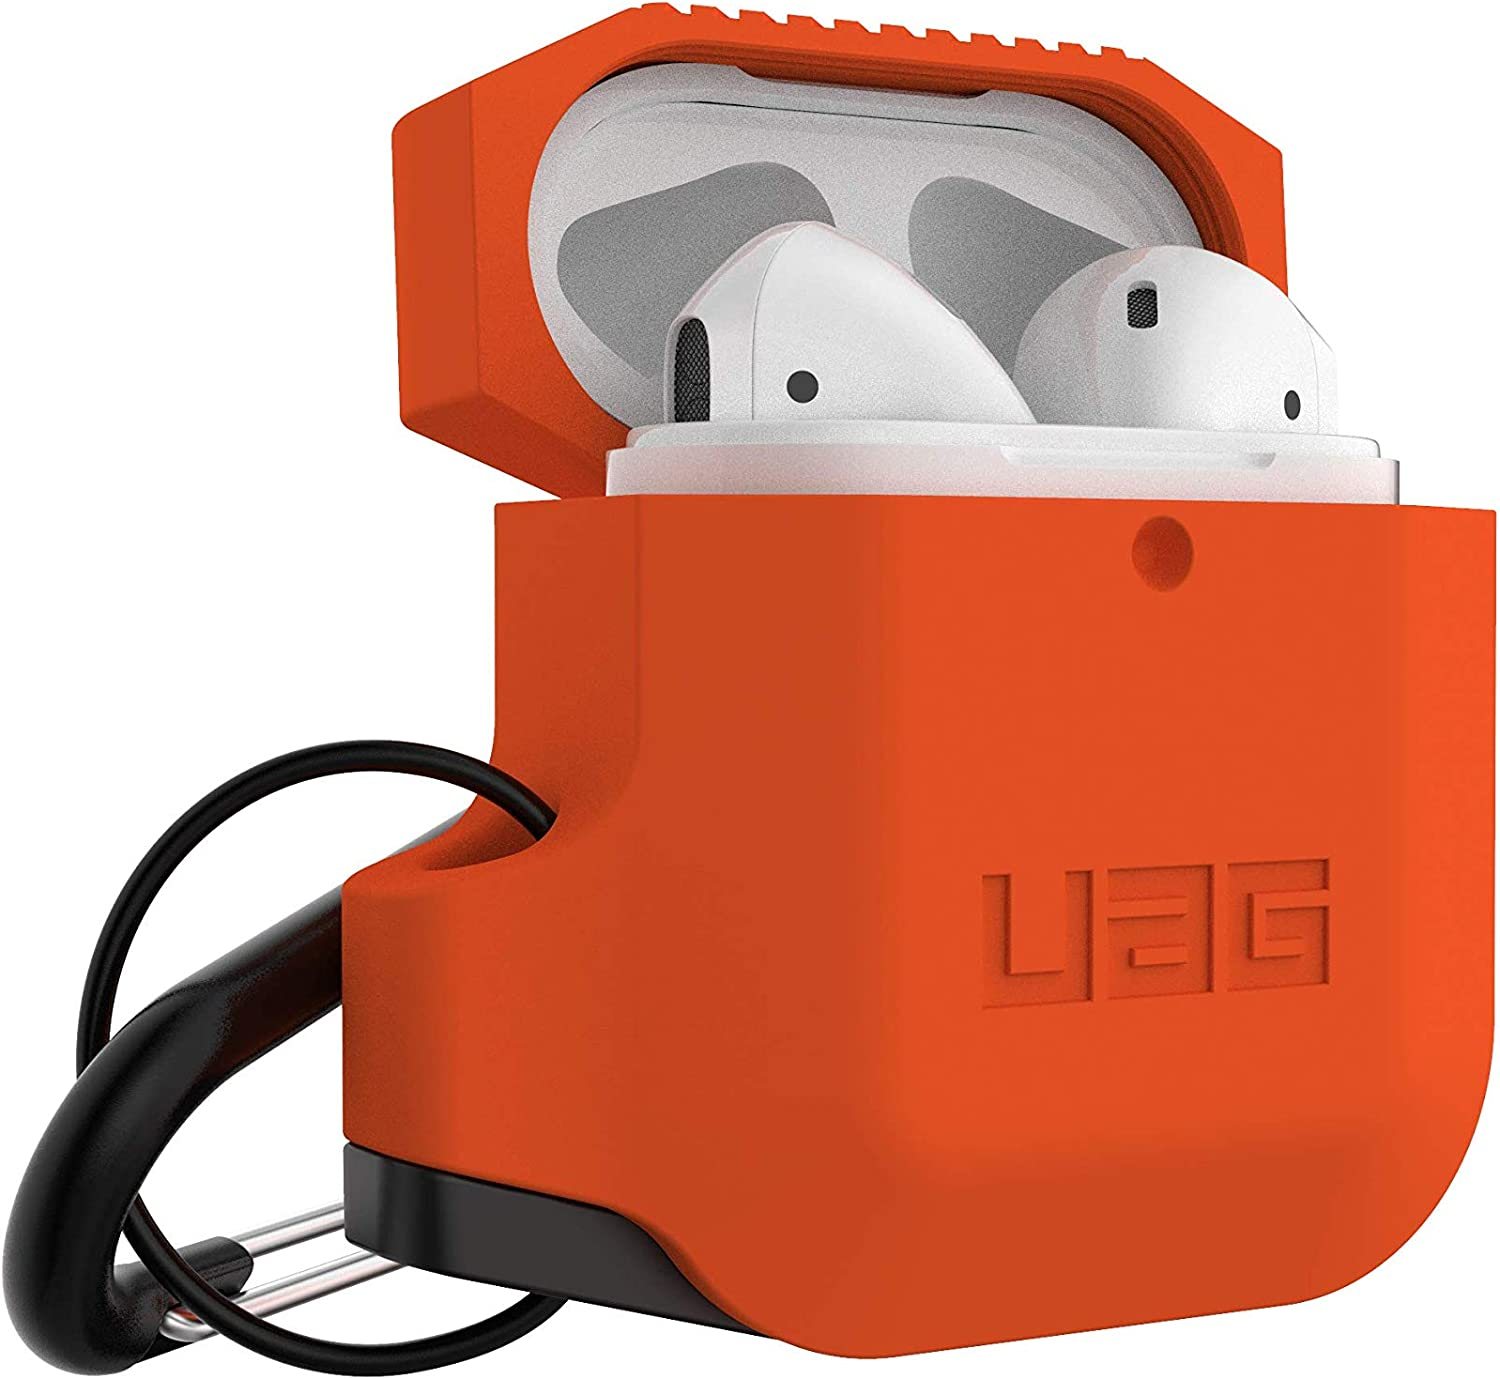 1st Gen /& 2nd Gen Black//Orange URBAN ARMOR GEAR UAG Compatible with AirPods Full-Body Protective Rugged Water Resistant Soft-Touch Silicone Case with Detachable Carabiner